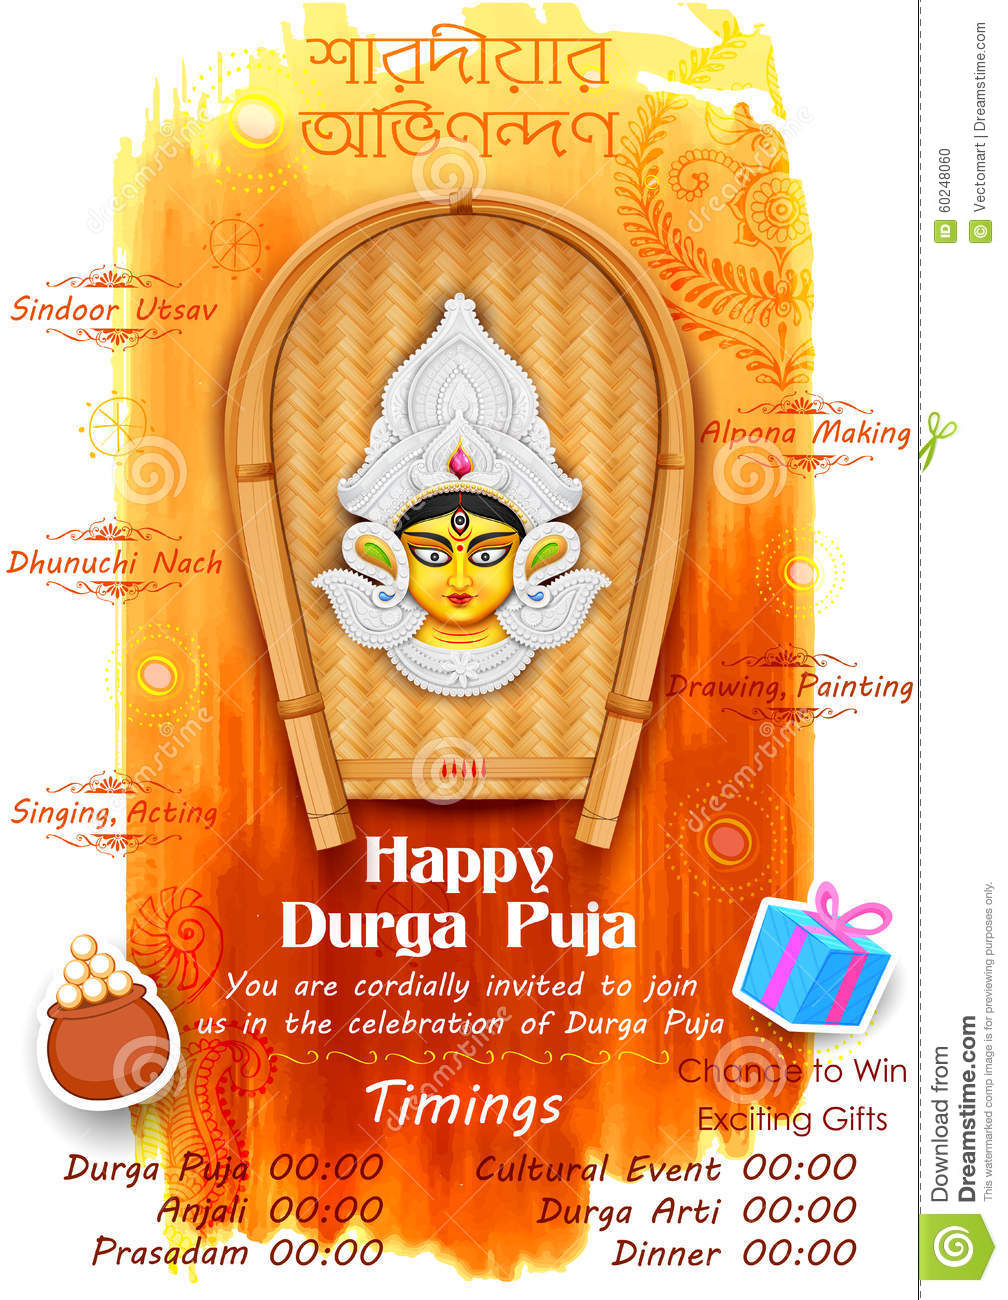 Happy durga puja background stock vector illustration of dussera happy durga puja background dussera dussehra kristyandbryce Image collections